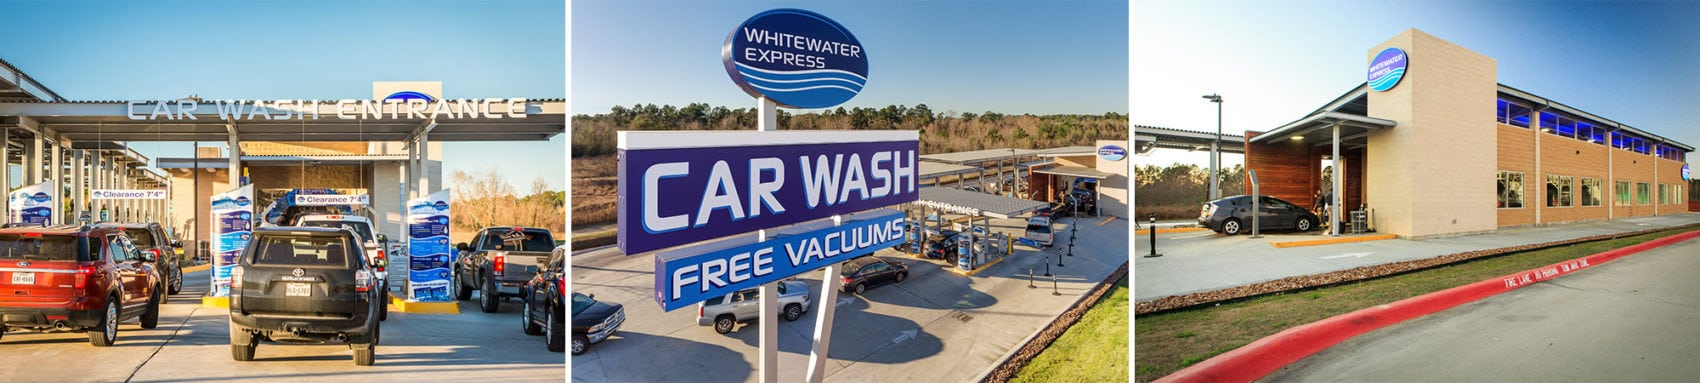 Whitewater express car wash your neighborhood car wash your neighborhood car wash huntsville location now open solutioingenieria Gallery